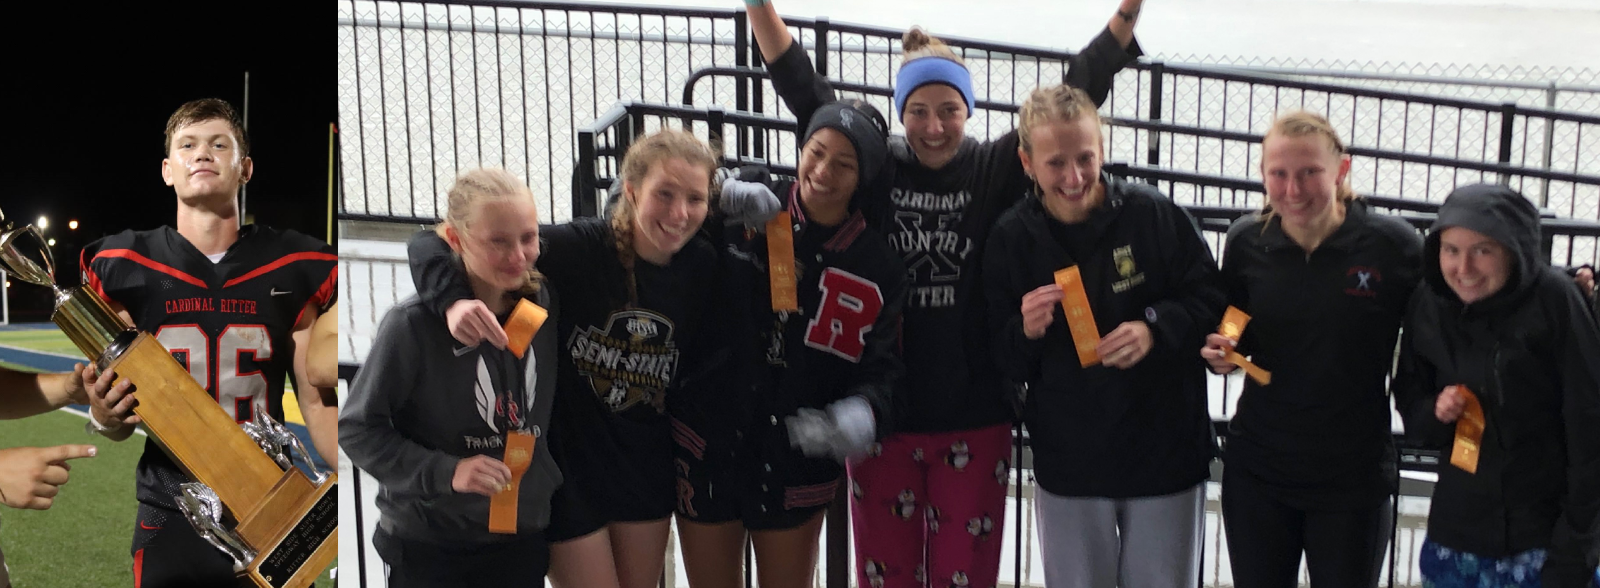 Girls Cross Country Team, Parker Mead Named AOTM